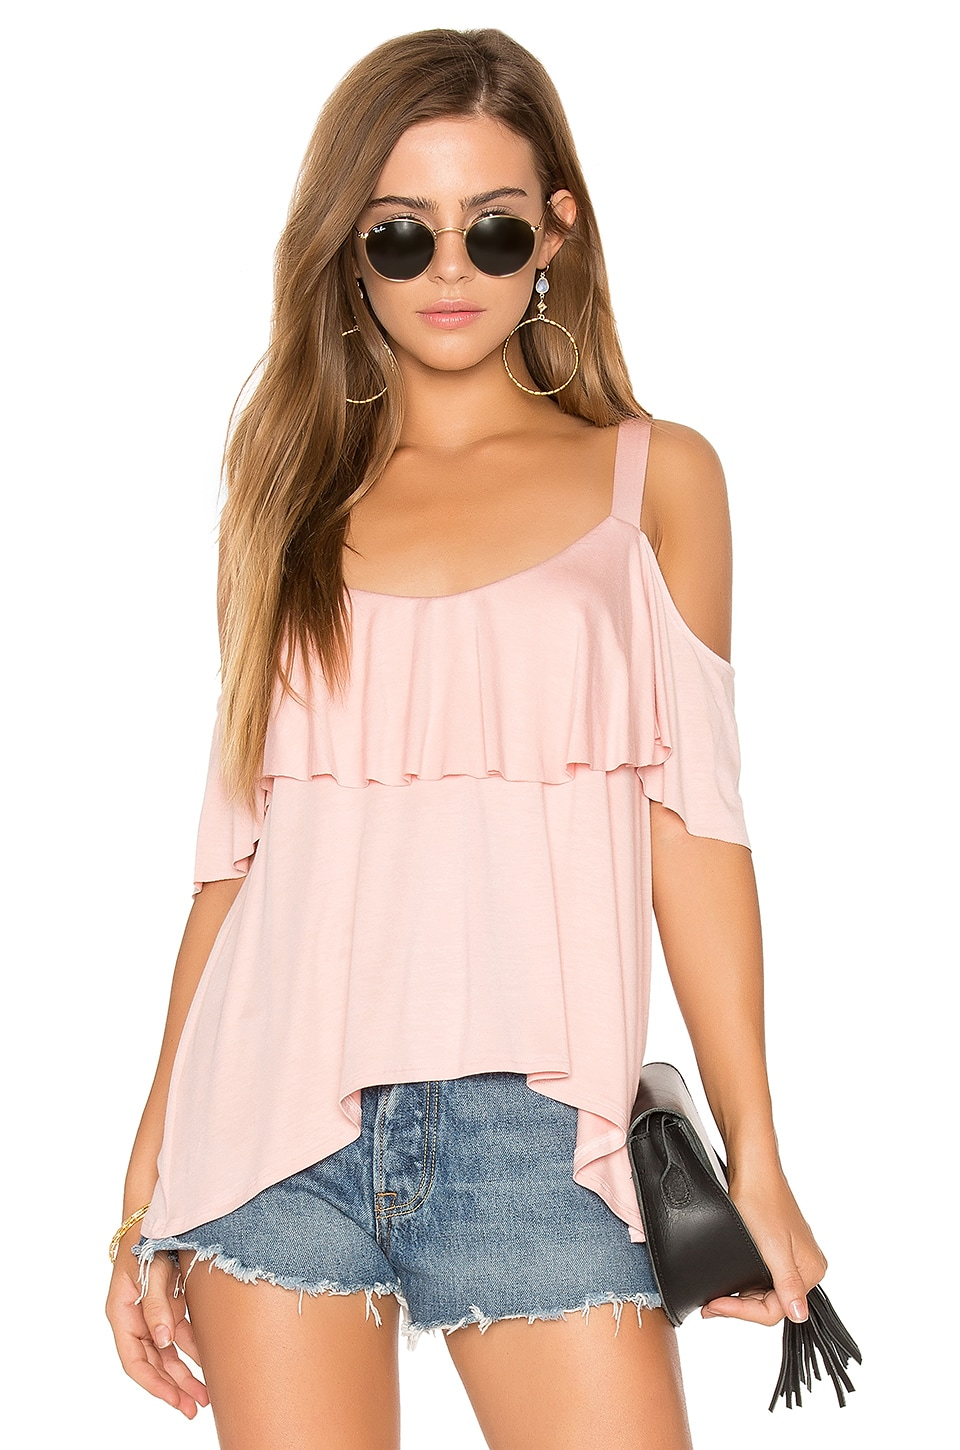 Ella Moss Bella Cold Shoulder Top in Powder Pink